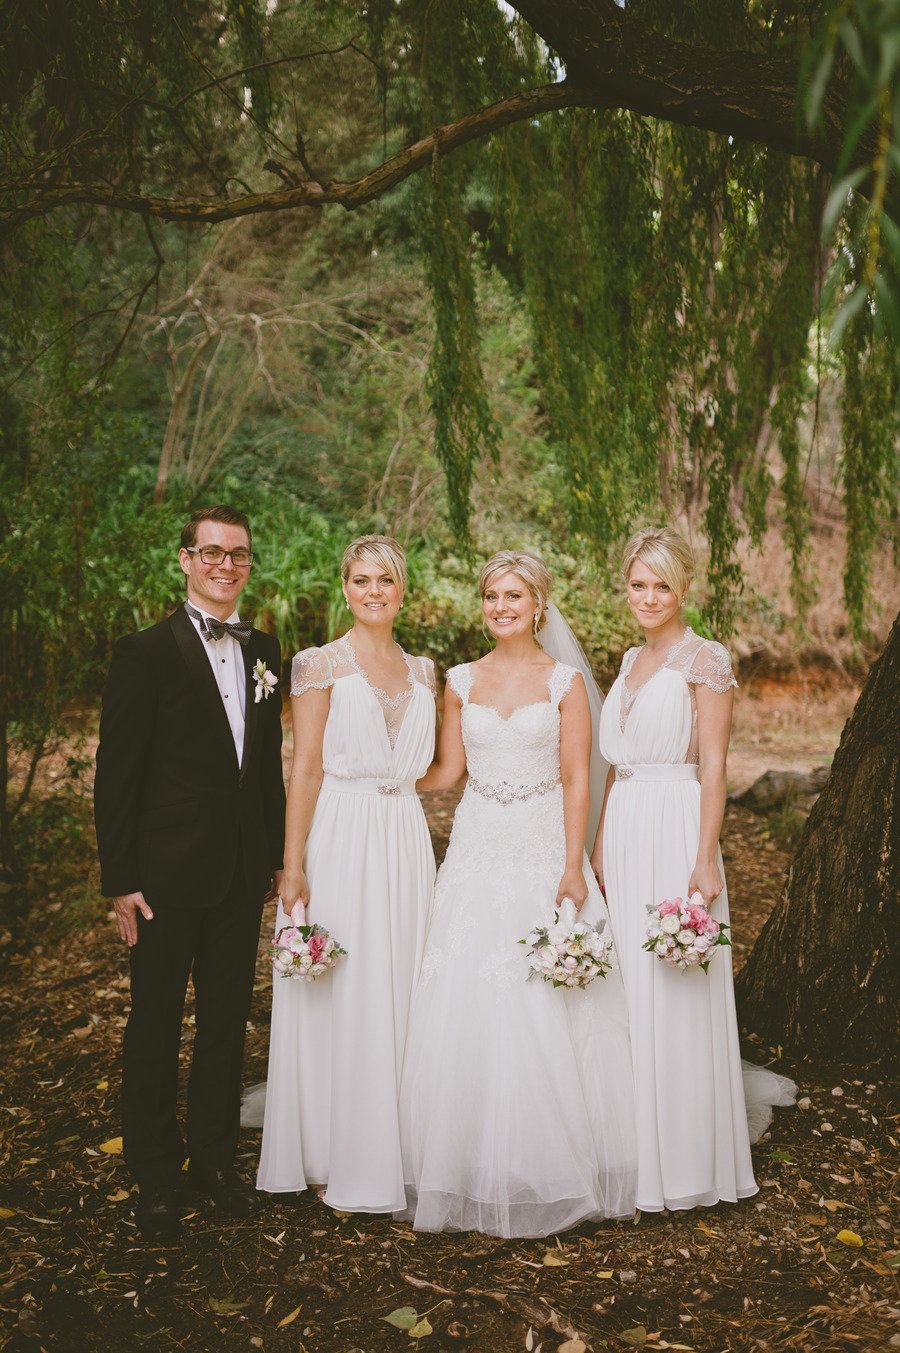 Adelaide Hills Wedding from Lucy Spartalis Photography  Read more - http://www.stylemepretty.com/australia-weddings/2013/07/30/adelaide-hills-wedding-from-lucy-spartalis-photography/